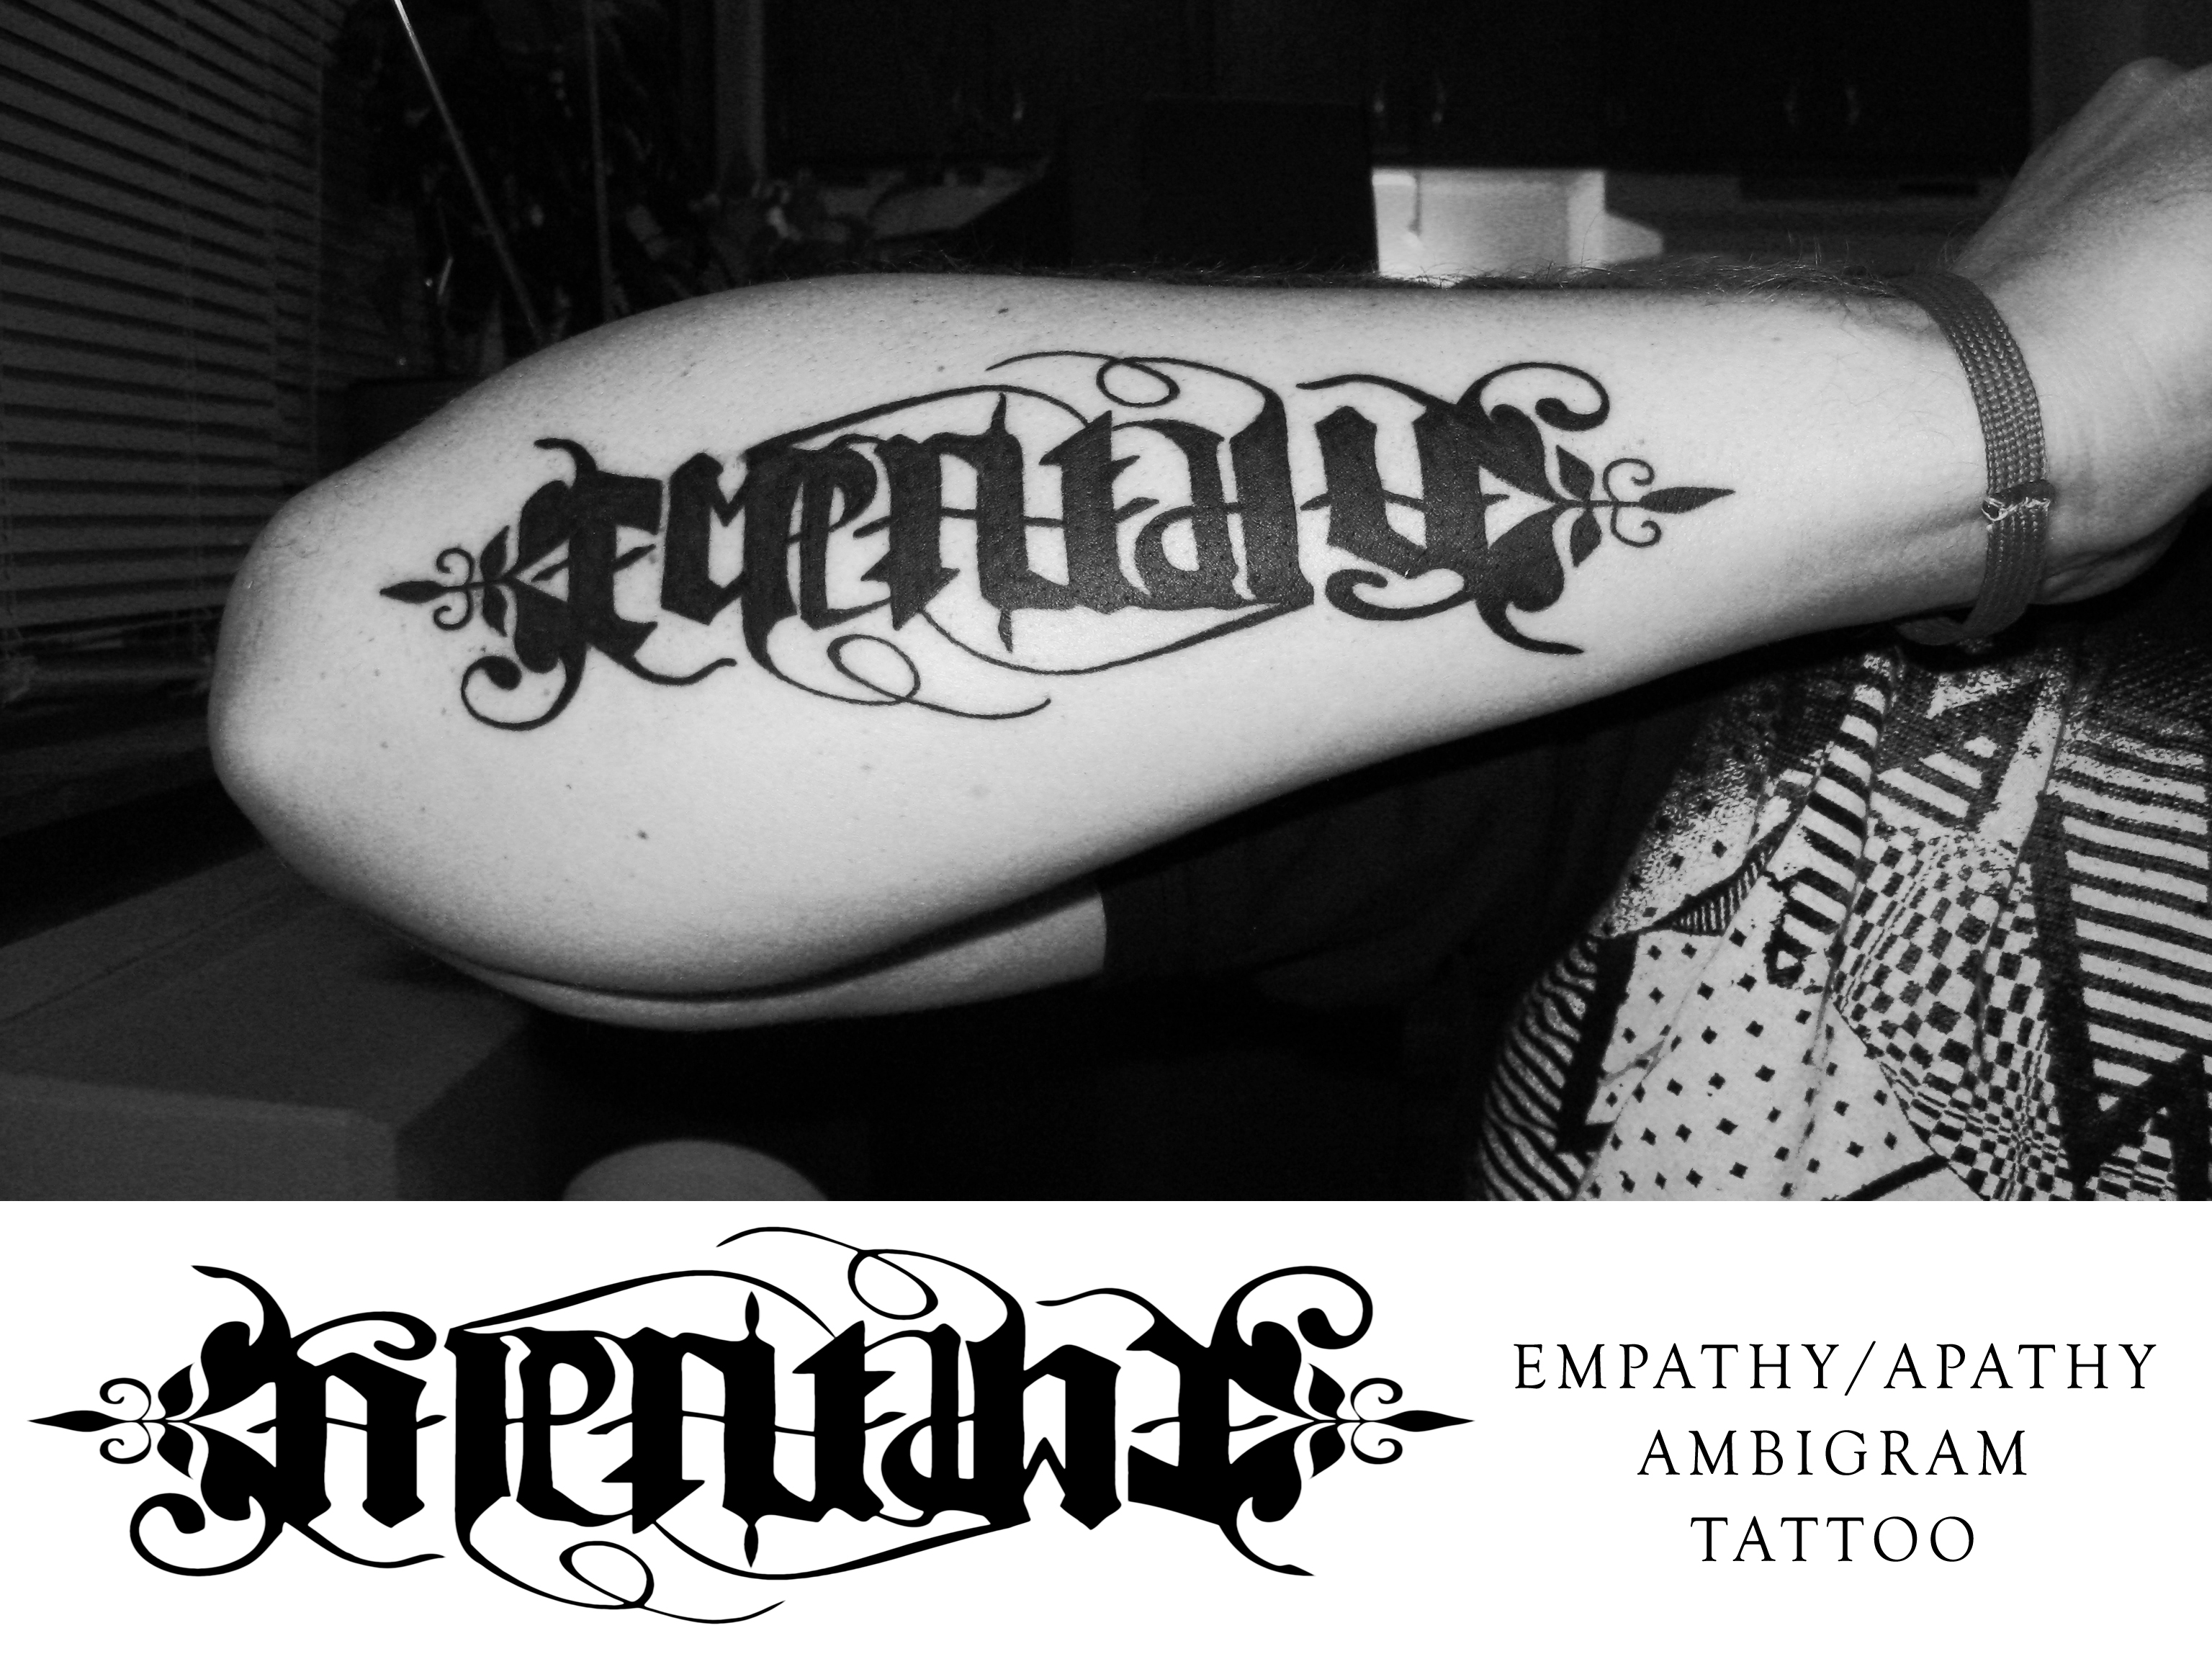 Ambigram Tattoos 108 images in Collection Page 2 3072x2304